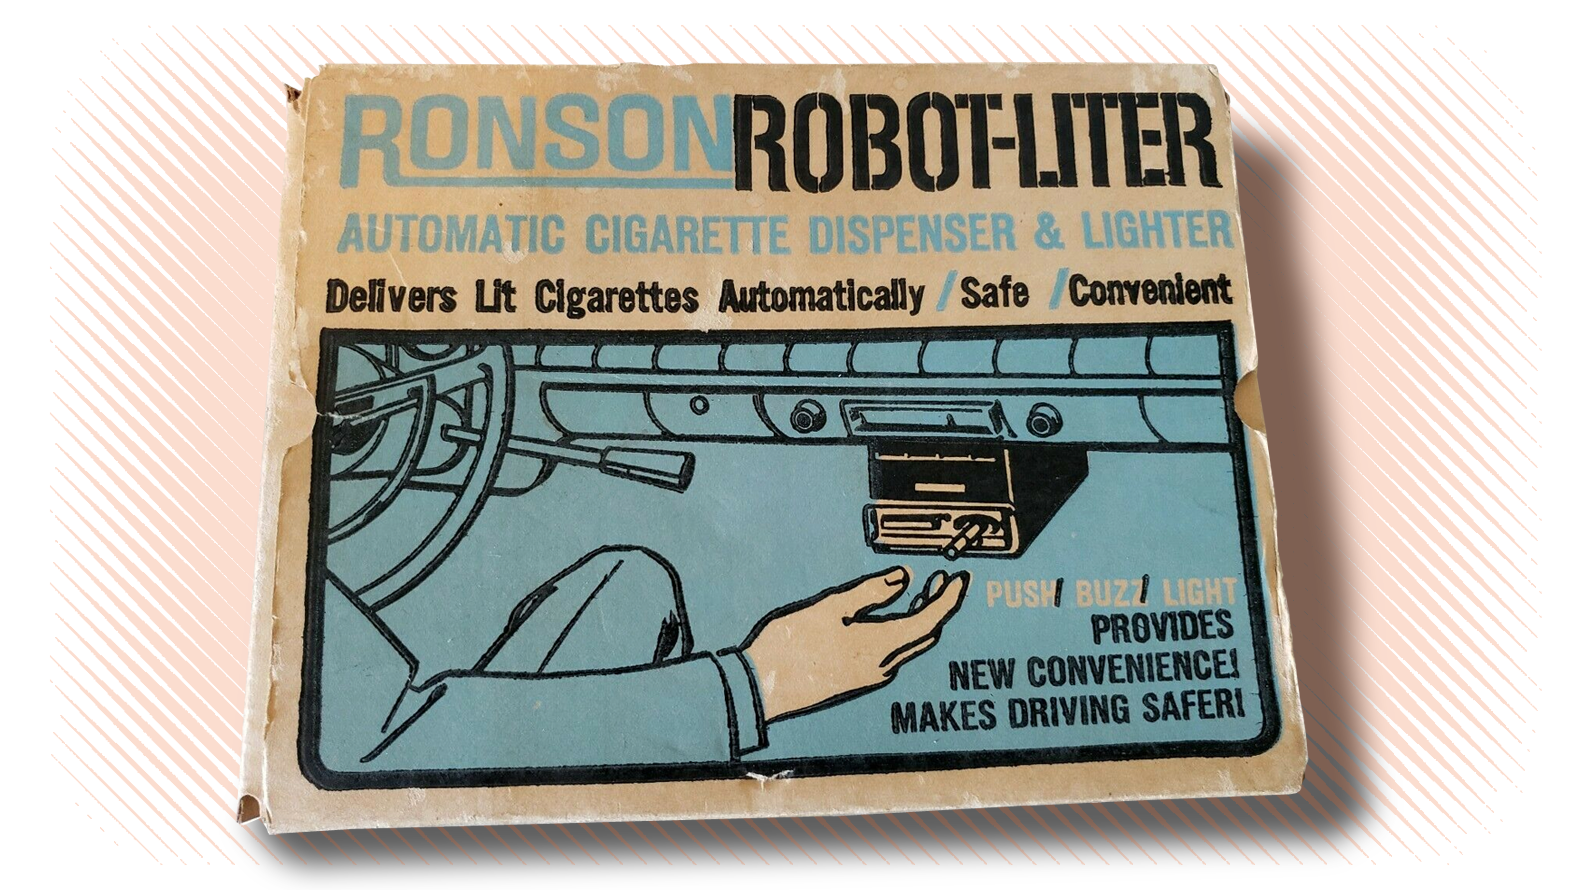 People Once Wanted Their Cars To Spit Lit Cigarettes At Them